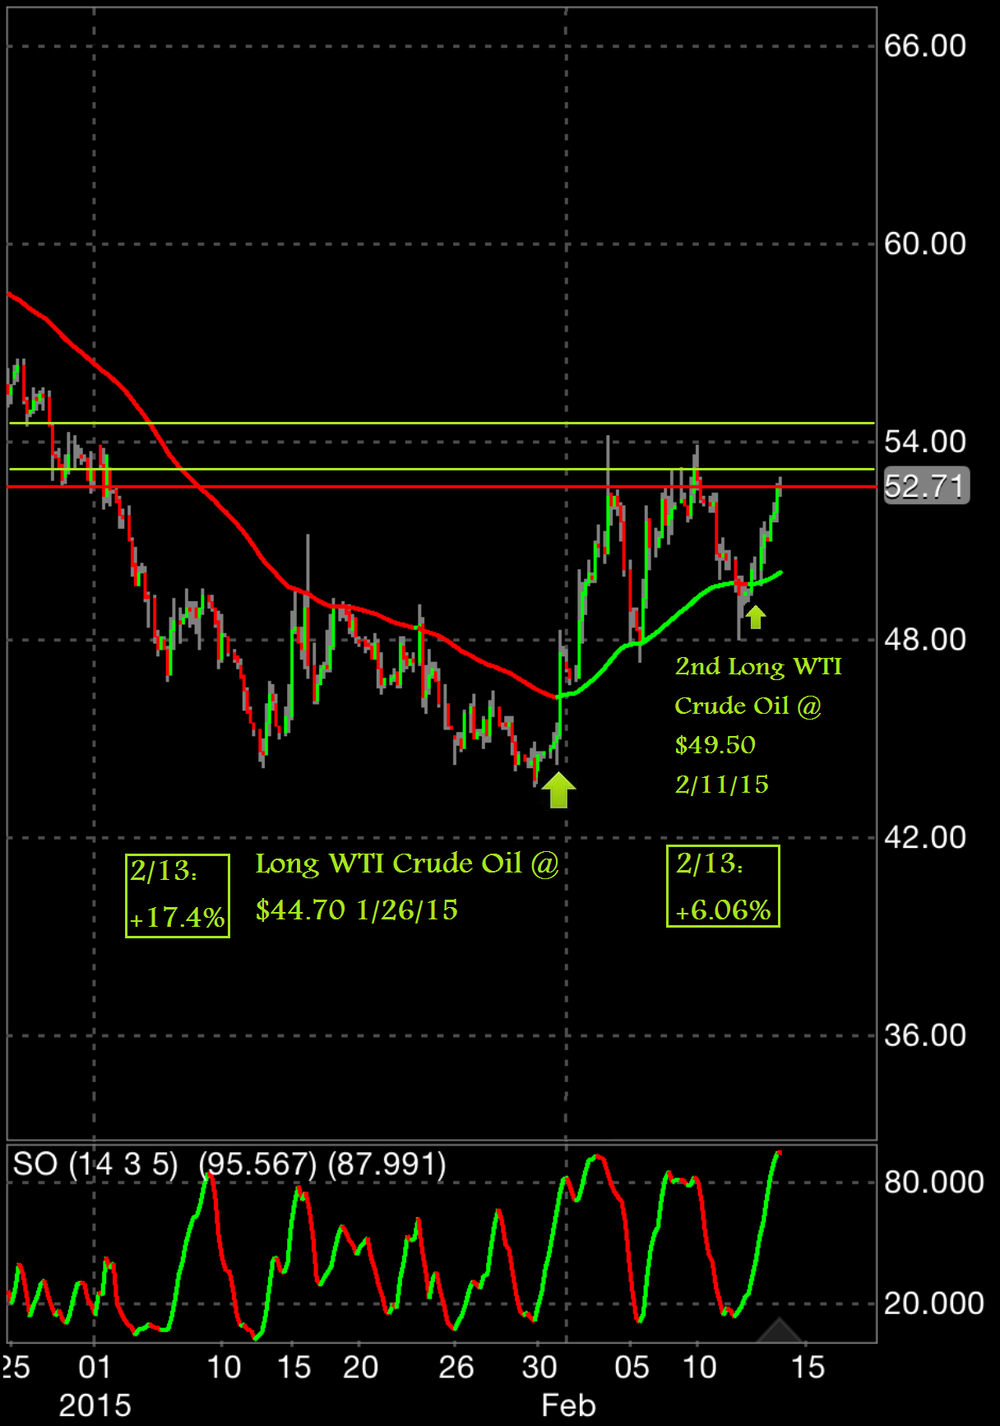 The latest pullback in prices has given us an opportunity to establish a second leg to our complex on crude oil